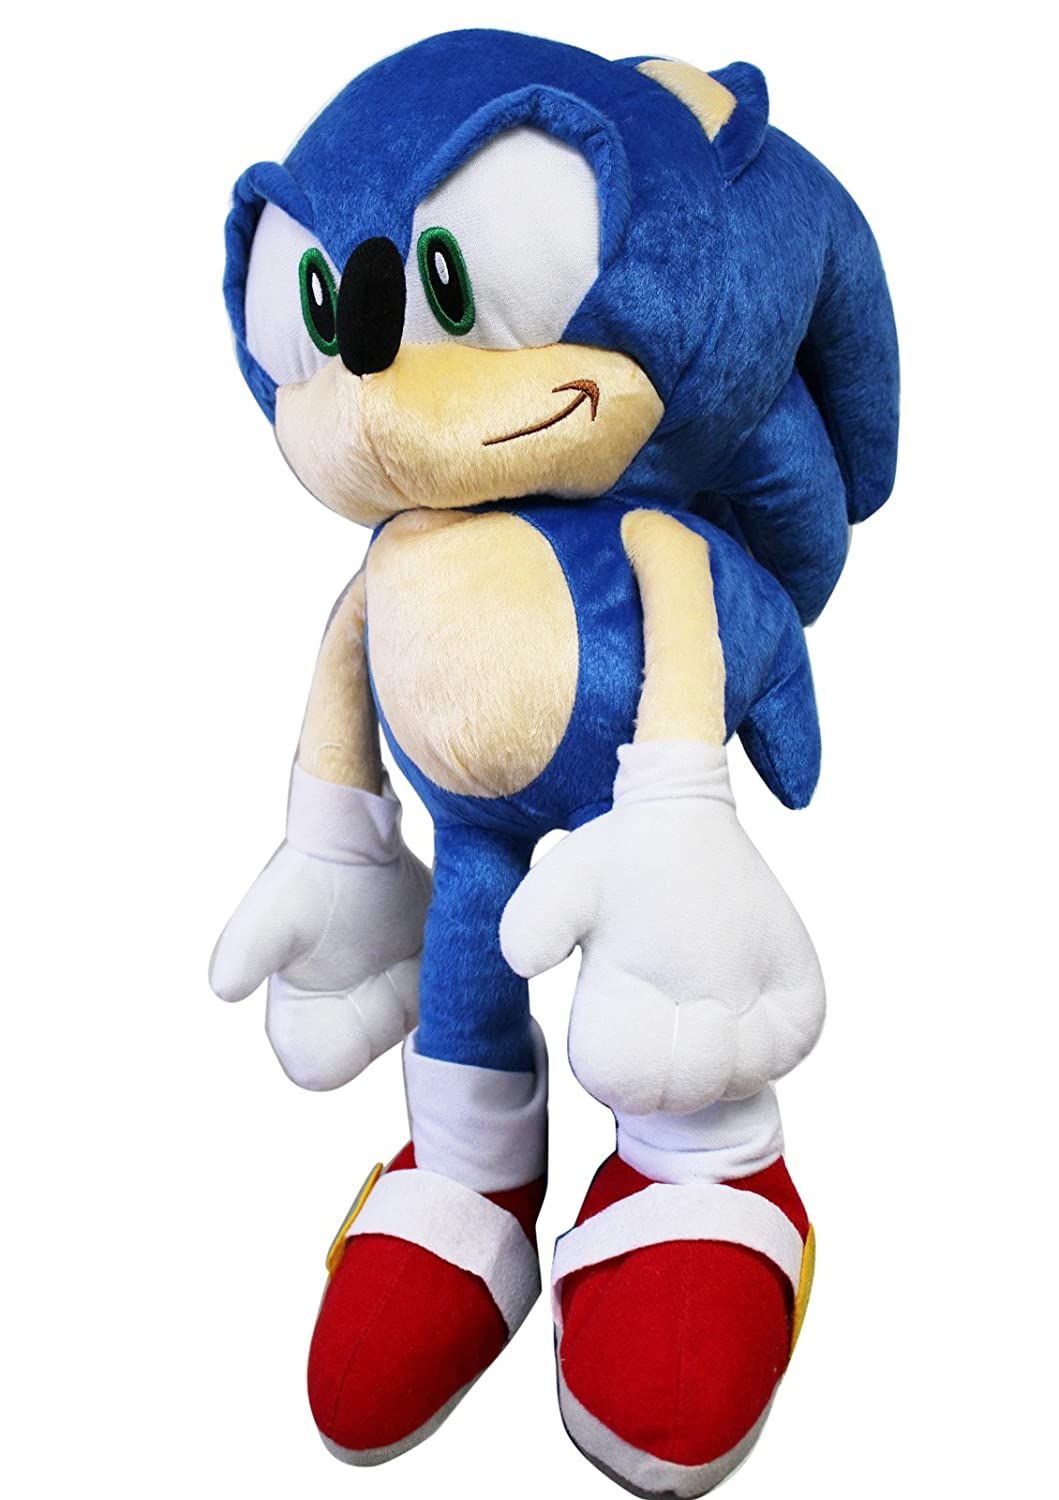 Sonic the Hedgehog Large Größe Kids Plush Toy With Secret Zipper Pocket (17in) by Sonic The Hedgehog